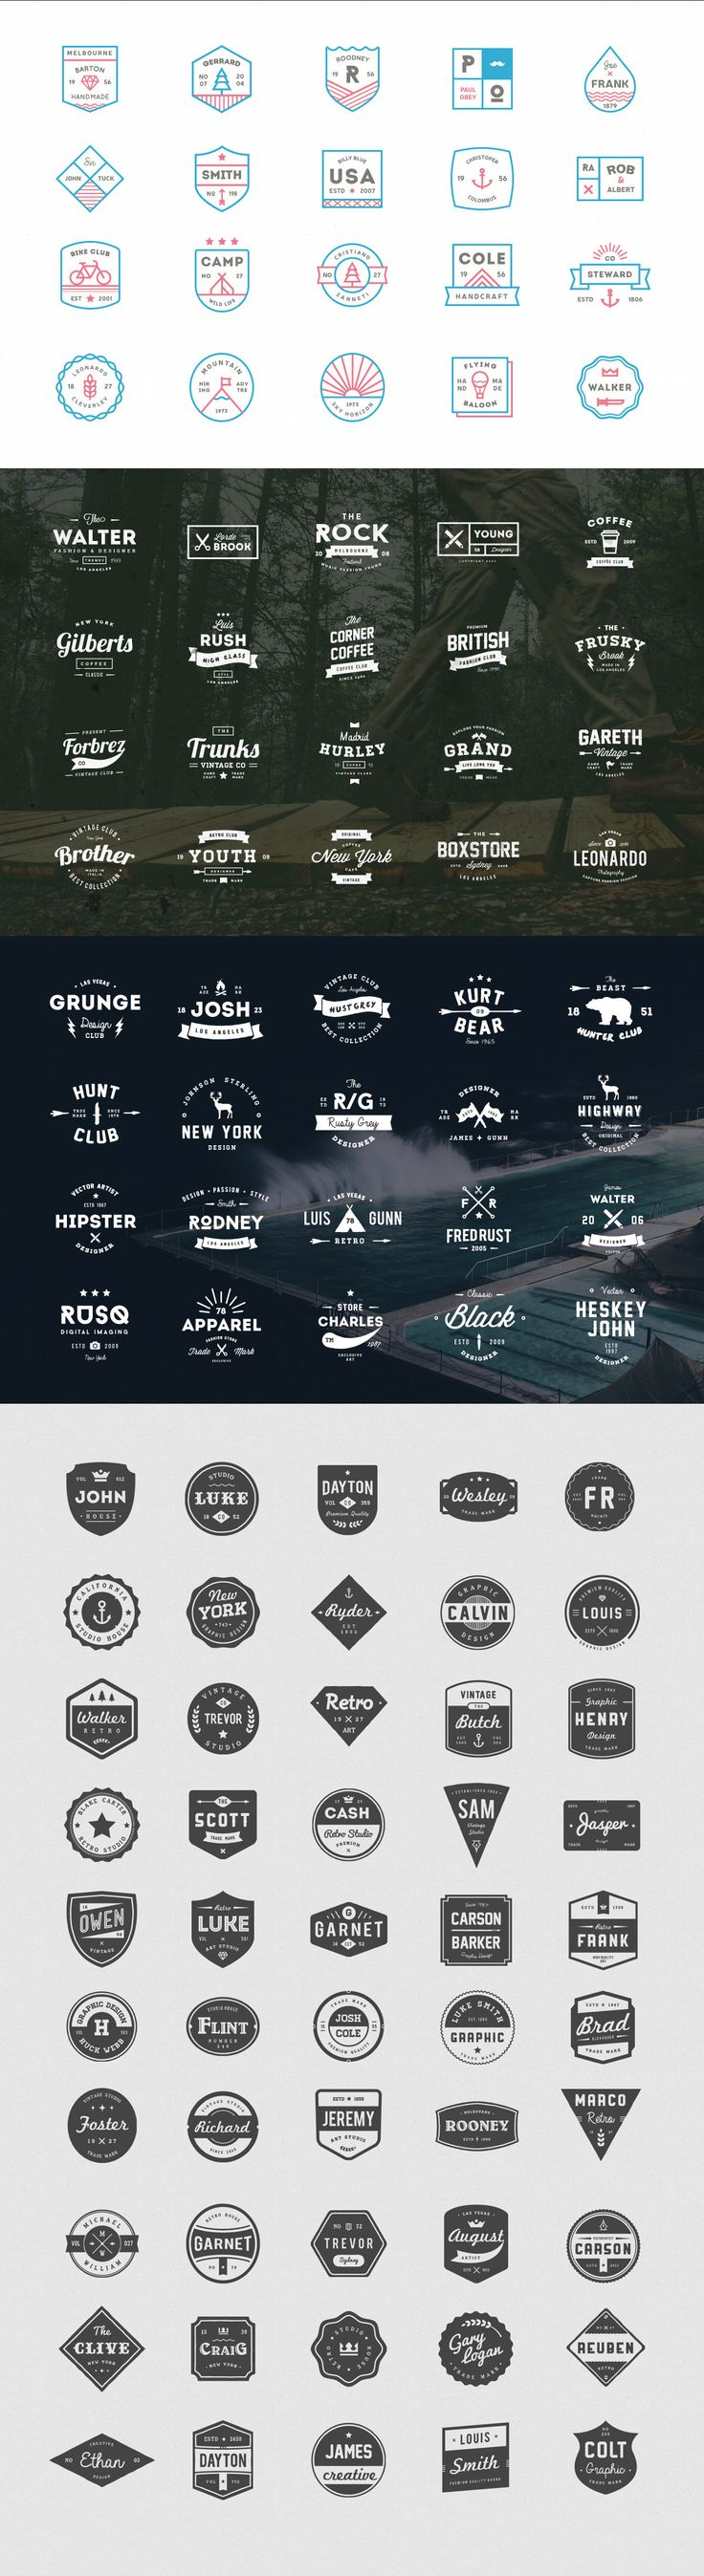 ONLY $14 for 210 VINTAGE LOGOS BUNDLE (very limited time) --- ITEMS YOU GET IN THIS BUNDLE: - 50 Retro Badges (AI, EPS, PSD) - - 20 Ink Logos (AI & EPS) - - 20 Vintage Logos & Badges Vol 01